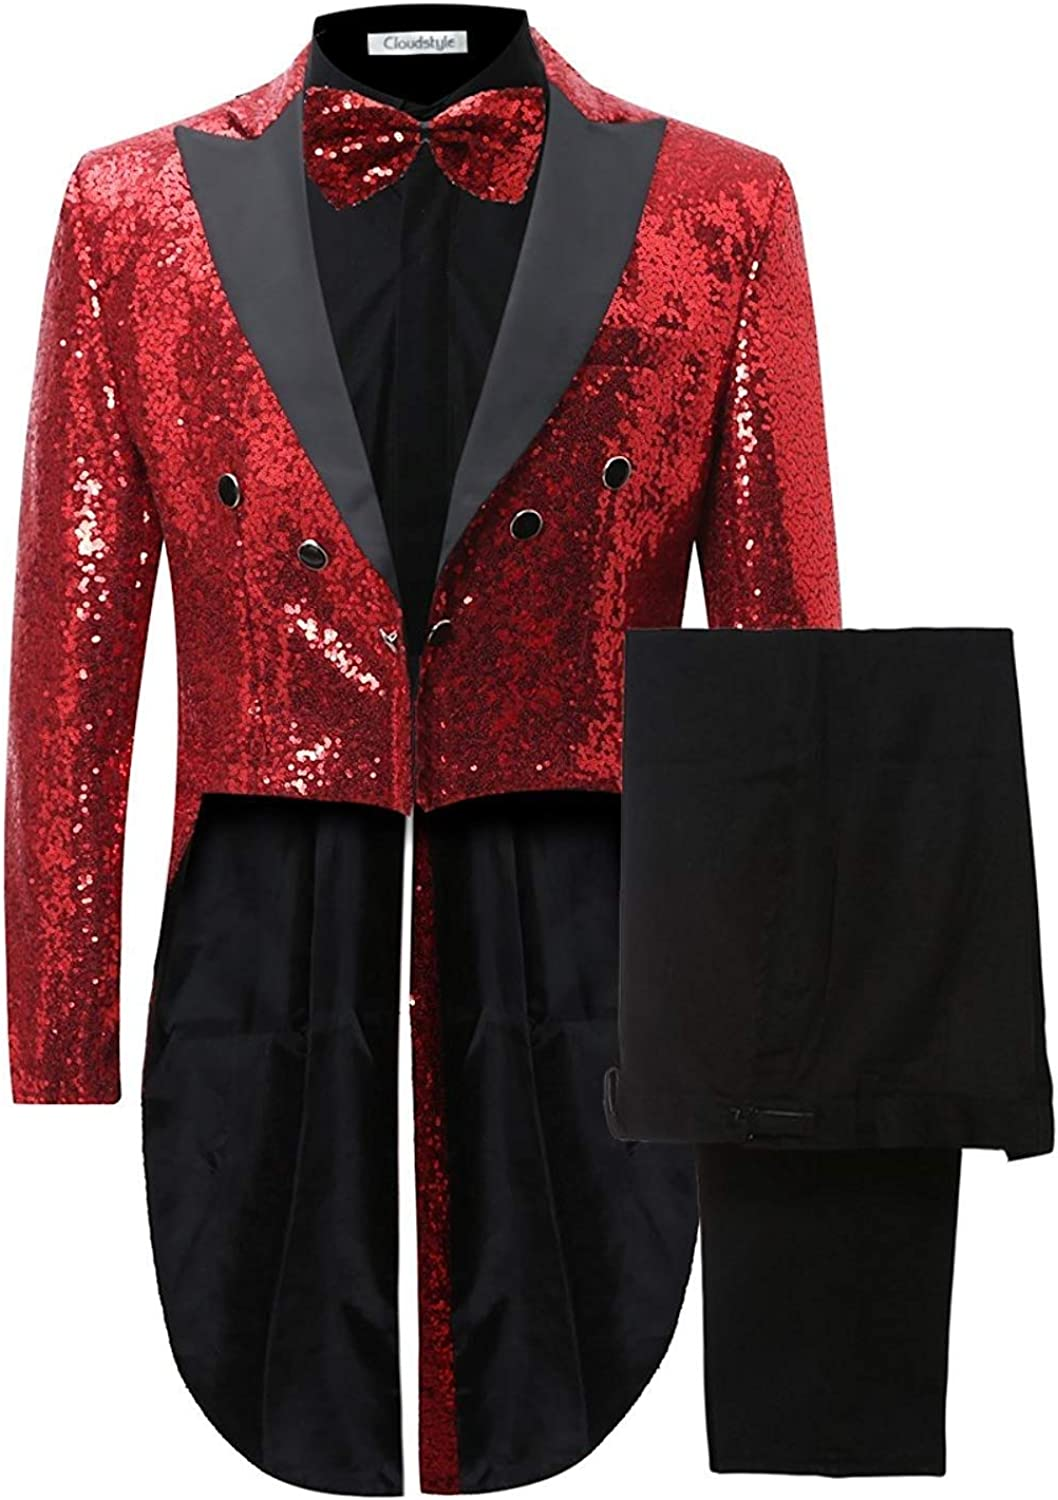 Mens 2 Piece Tuxedo Classic Dress Suit Dinner Red Blazer Jacket Black Pants